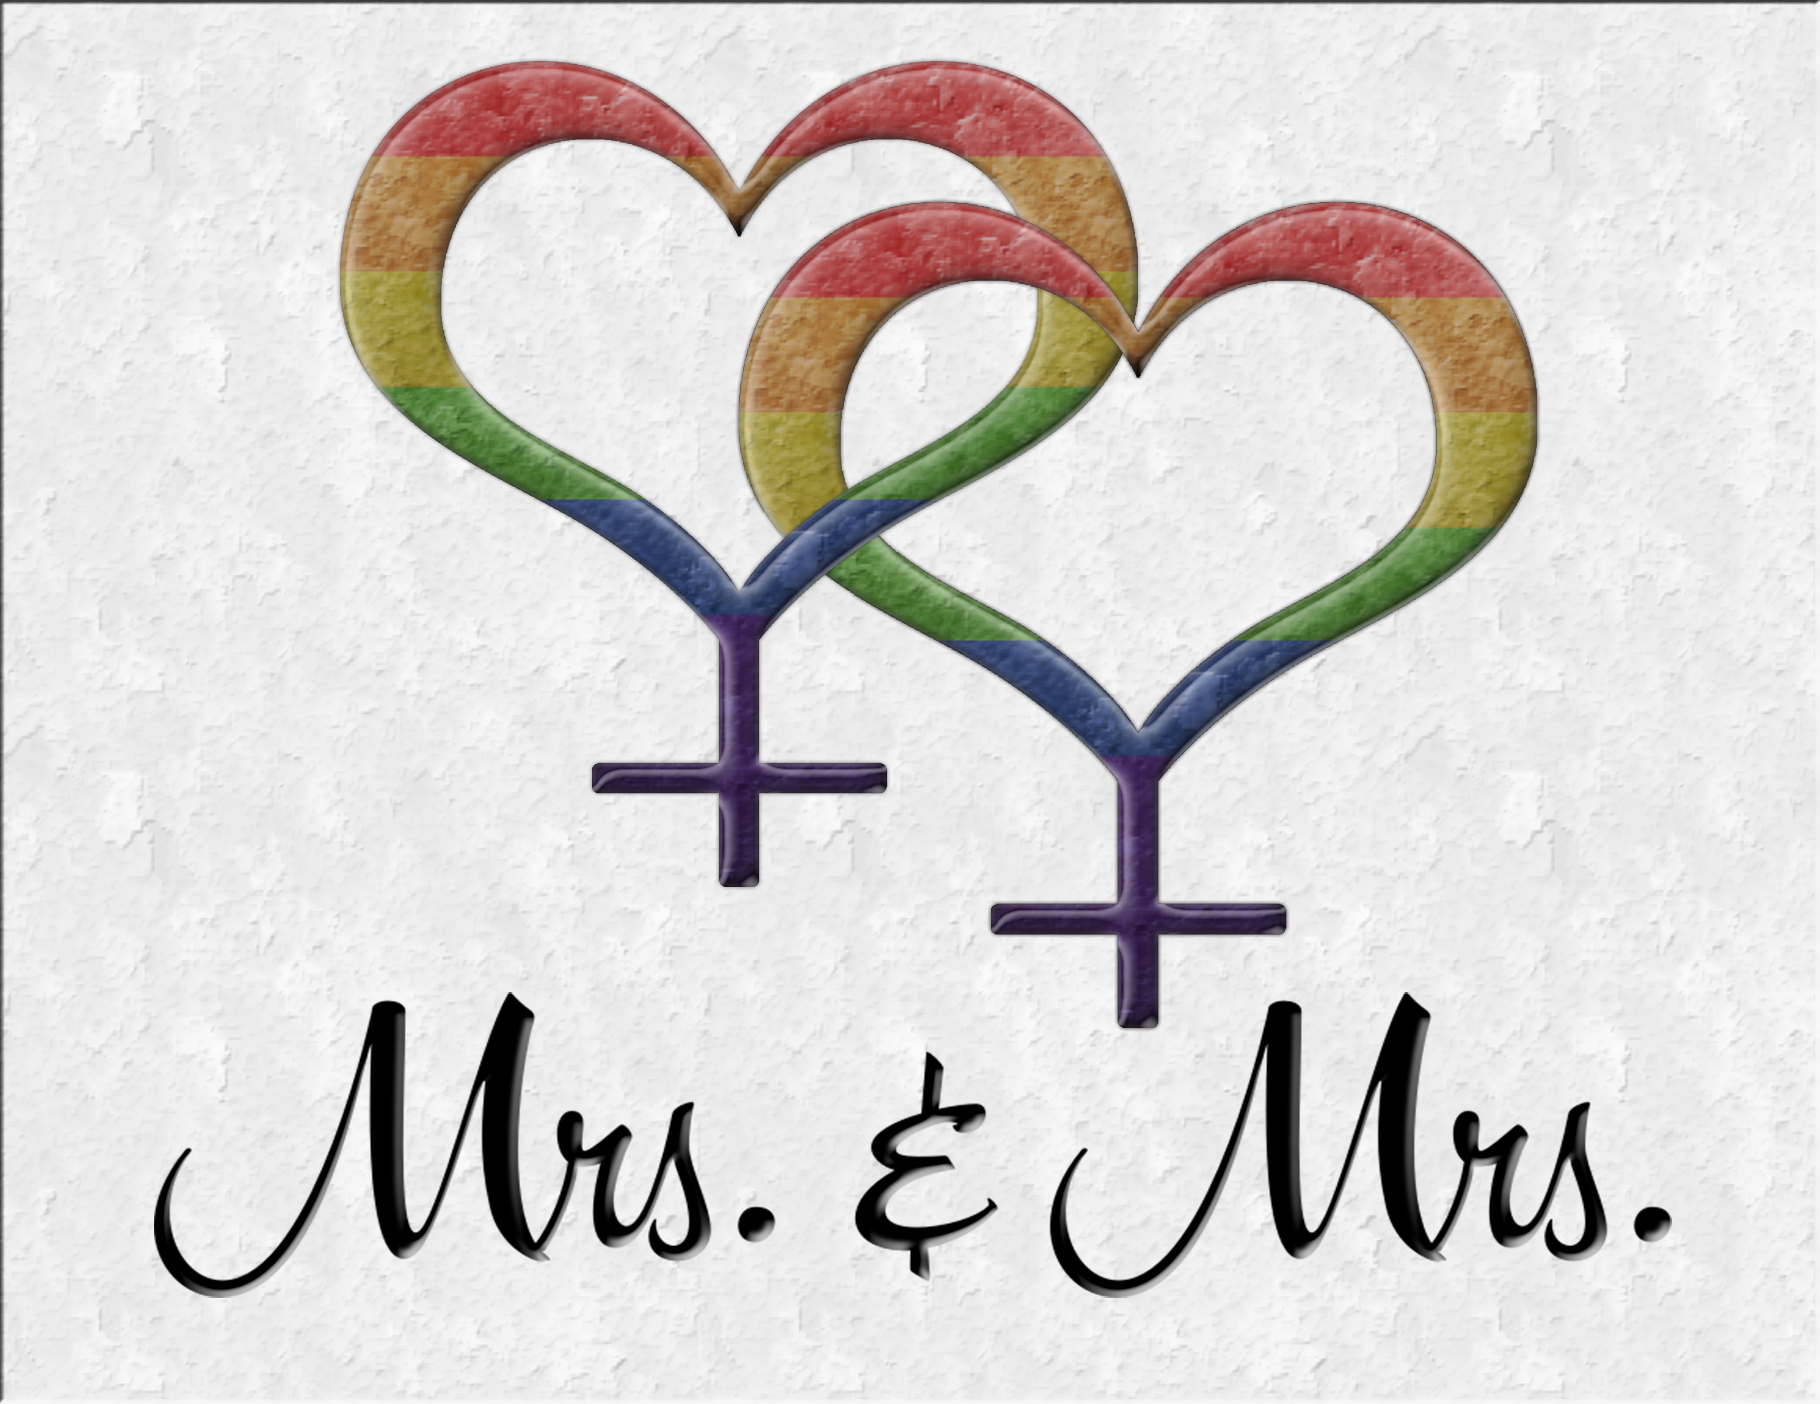 Mrs and Mrs Lesbian pride Wedding design with overlapping rainbow colored Female gender symbols Great